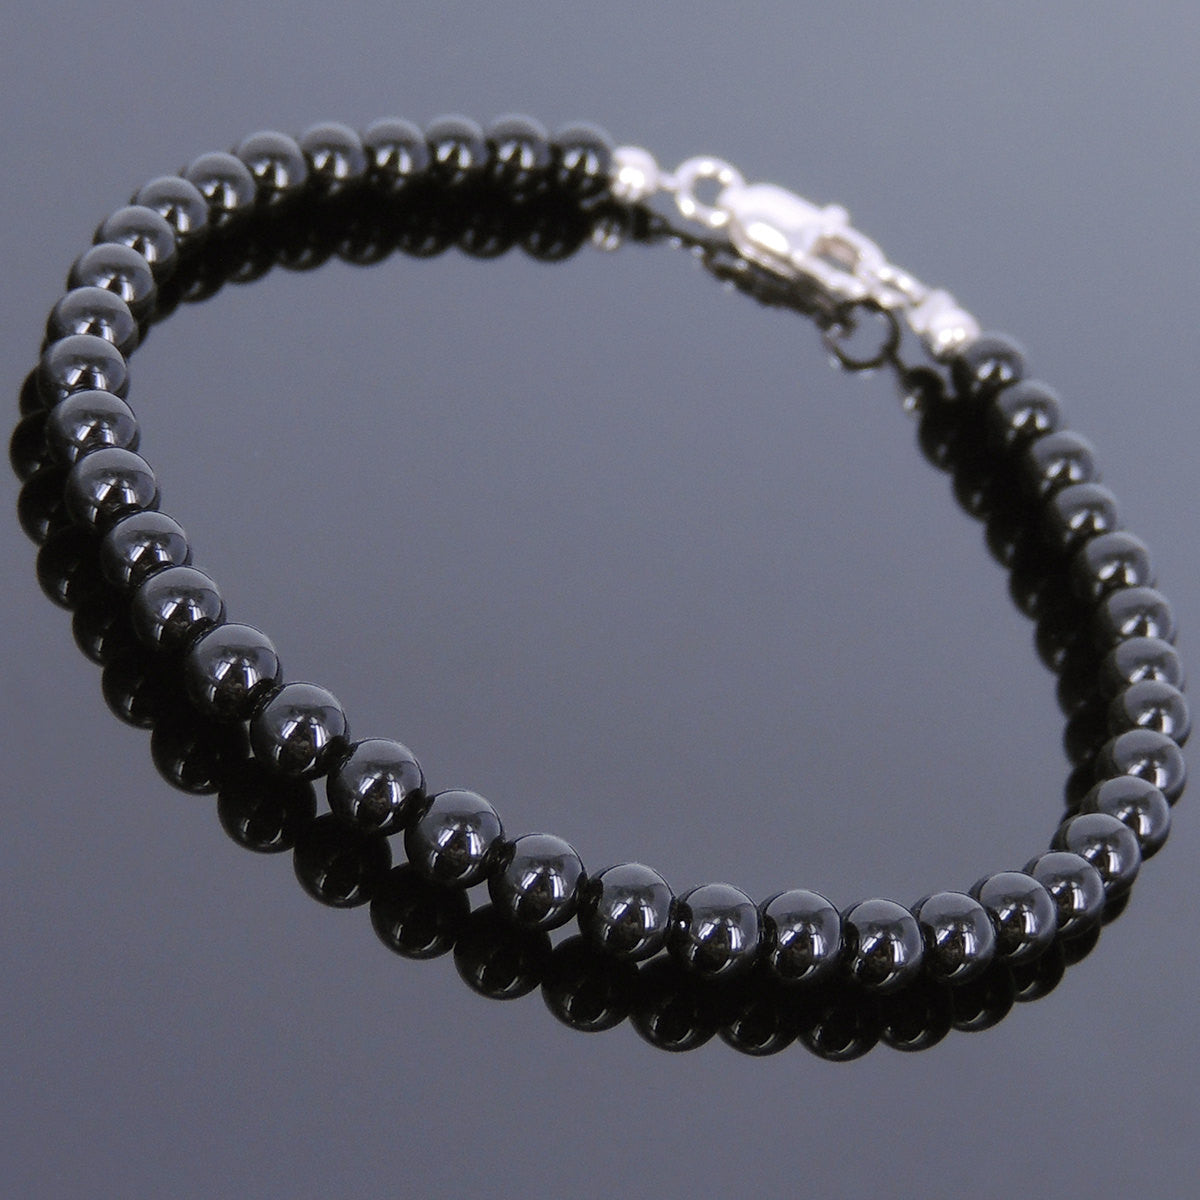 4mm Bright Black Onyx Healing Gemstone Bracelet with S925 Sterling Silver Spacer Beads & Clasp - Handmade by Gem & Silver BR617